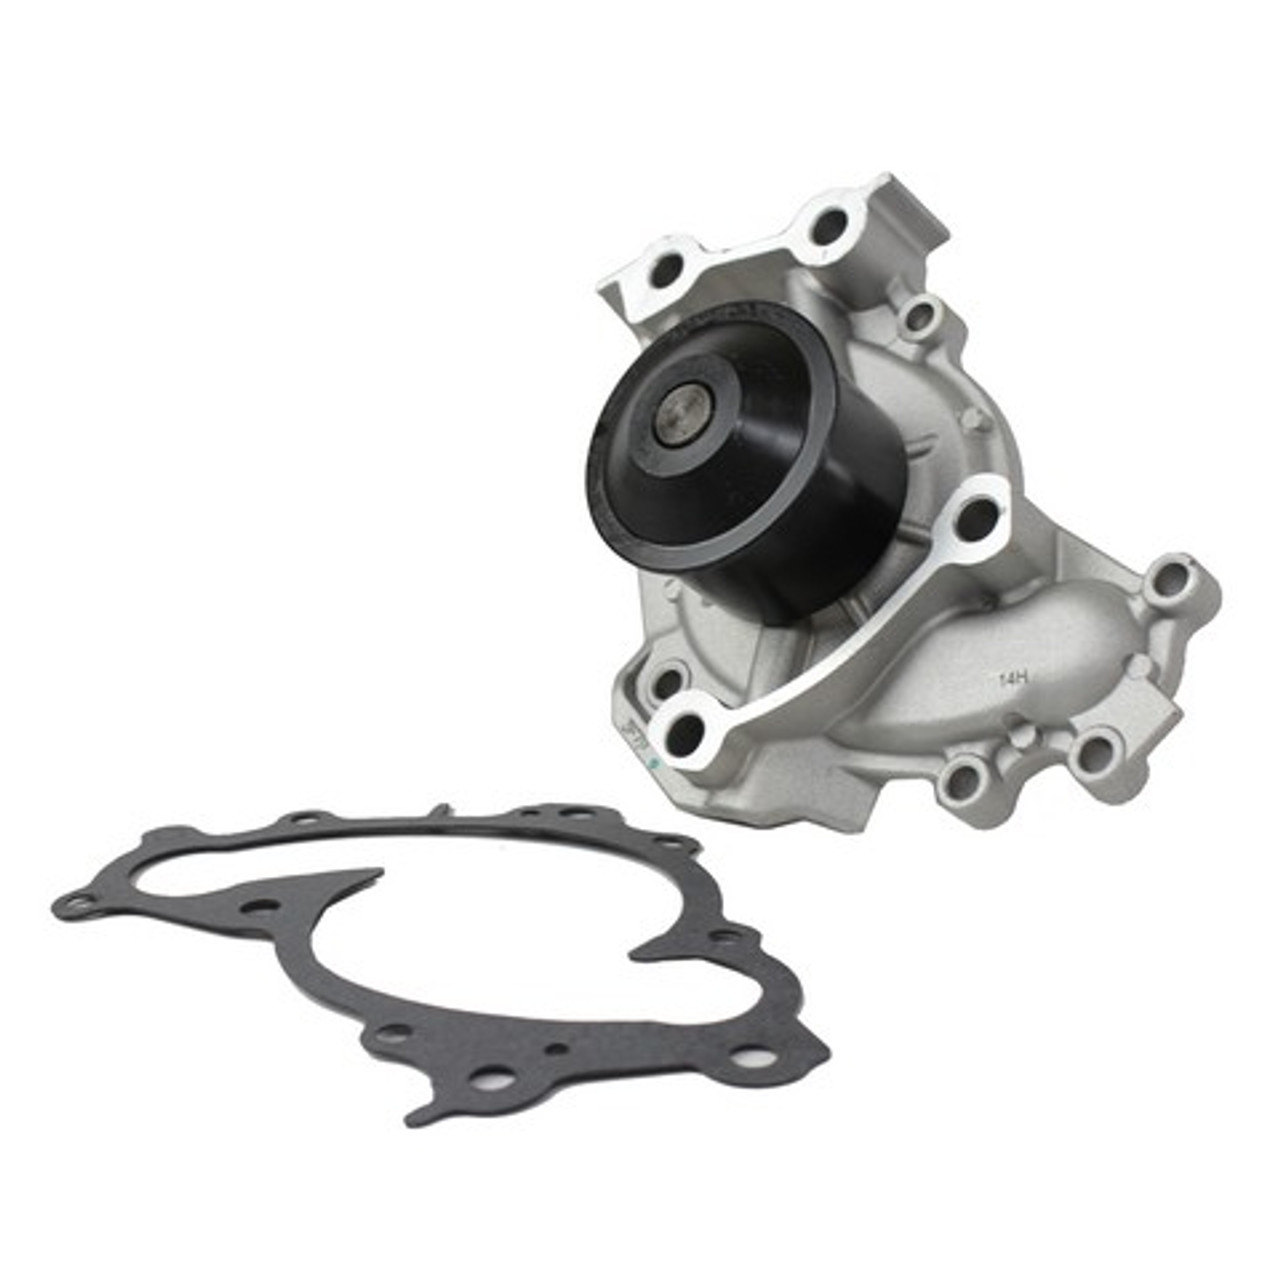 2002 Toyota Camry 3.0L Water Pump WP960.E43